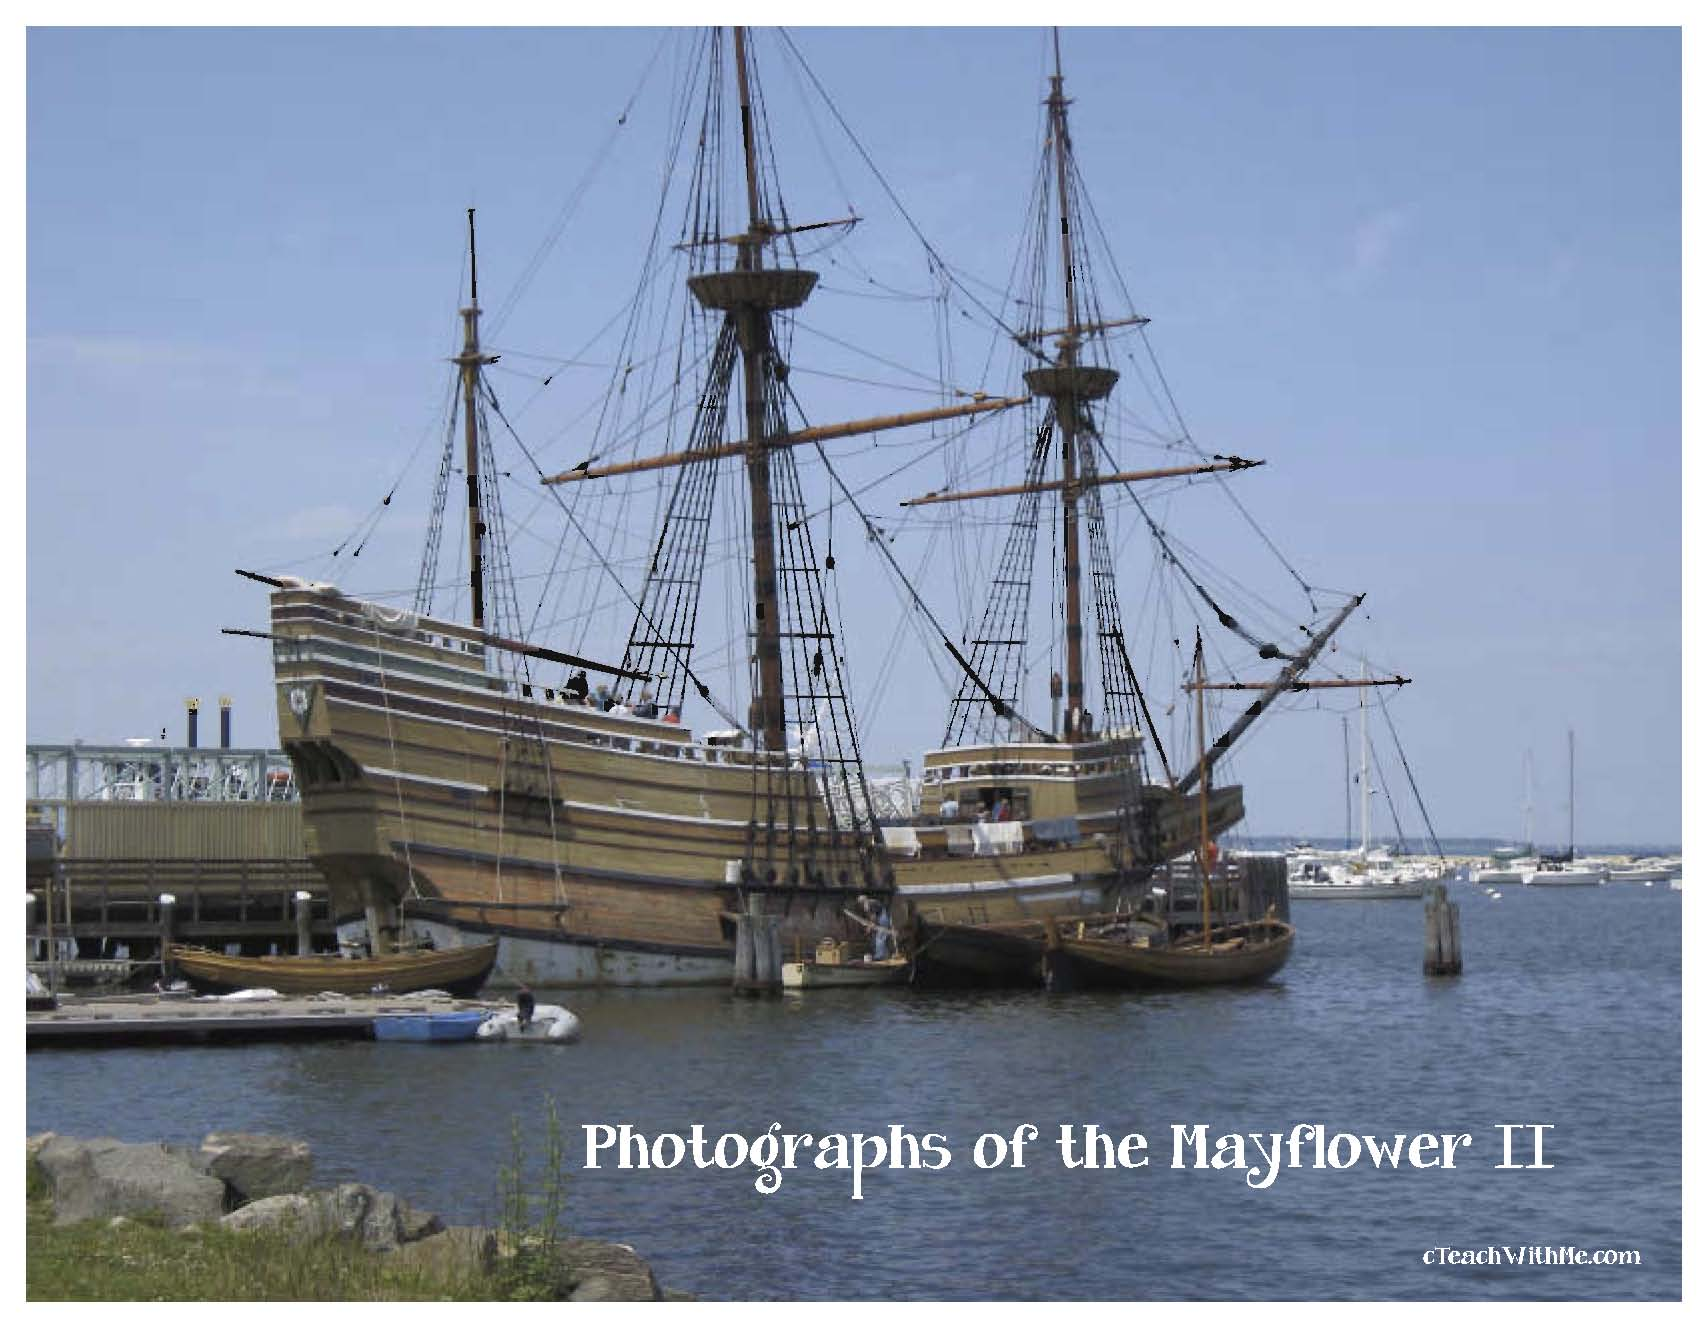 real photographs of the Mayflower II, real photographs of Plymouth rock, real photographs of Plimoth plantation, videos of the mayflower, videos of the pilgrimis, video of Mice on the Mayflower, real photographs of wampanoag Indians, thanksgiving activities